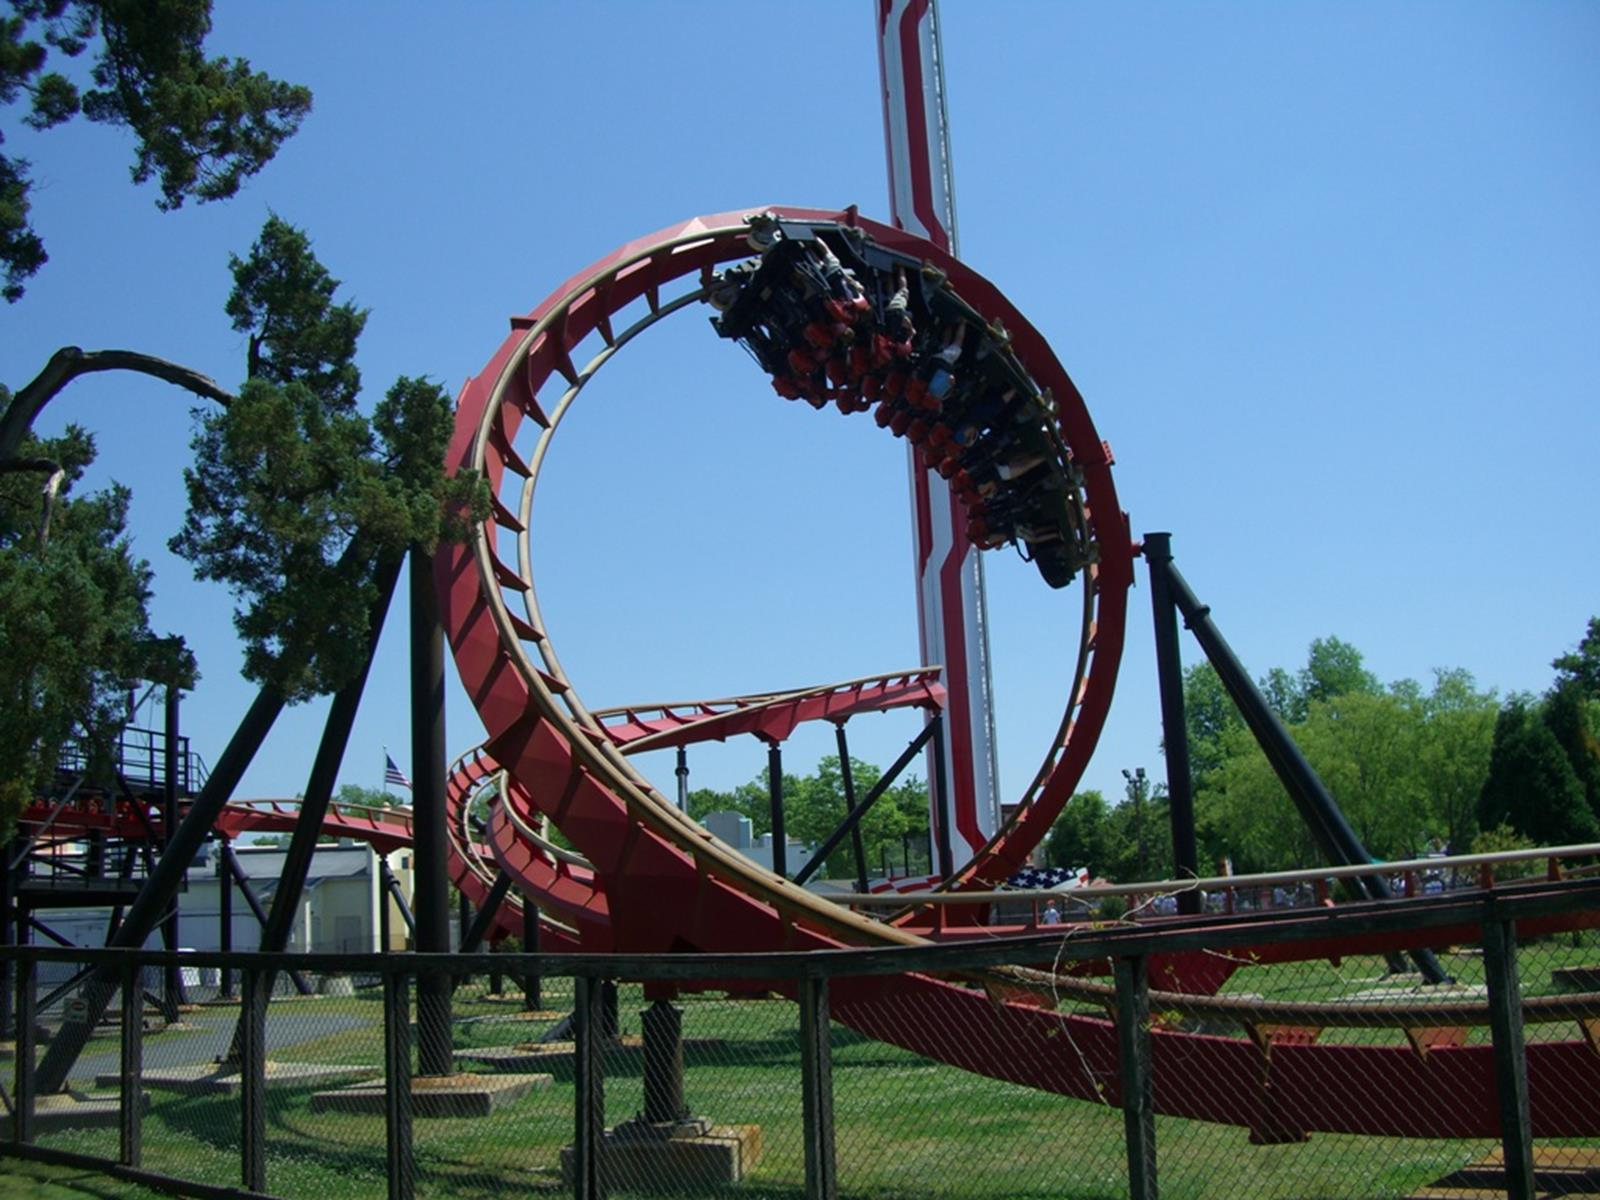 Vortex at Carowinds. Credit: Coasterman1234 at en.wikipedia